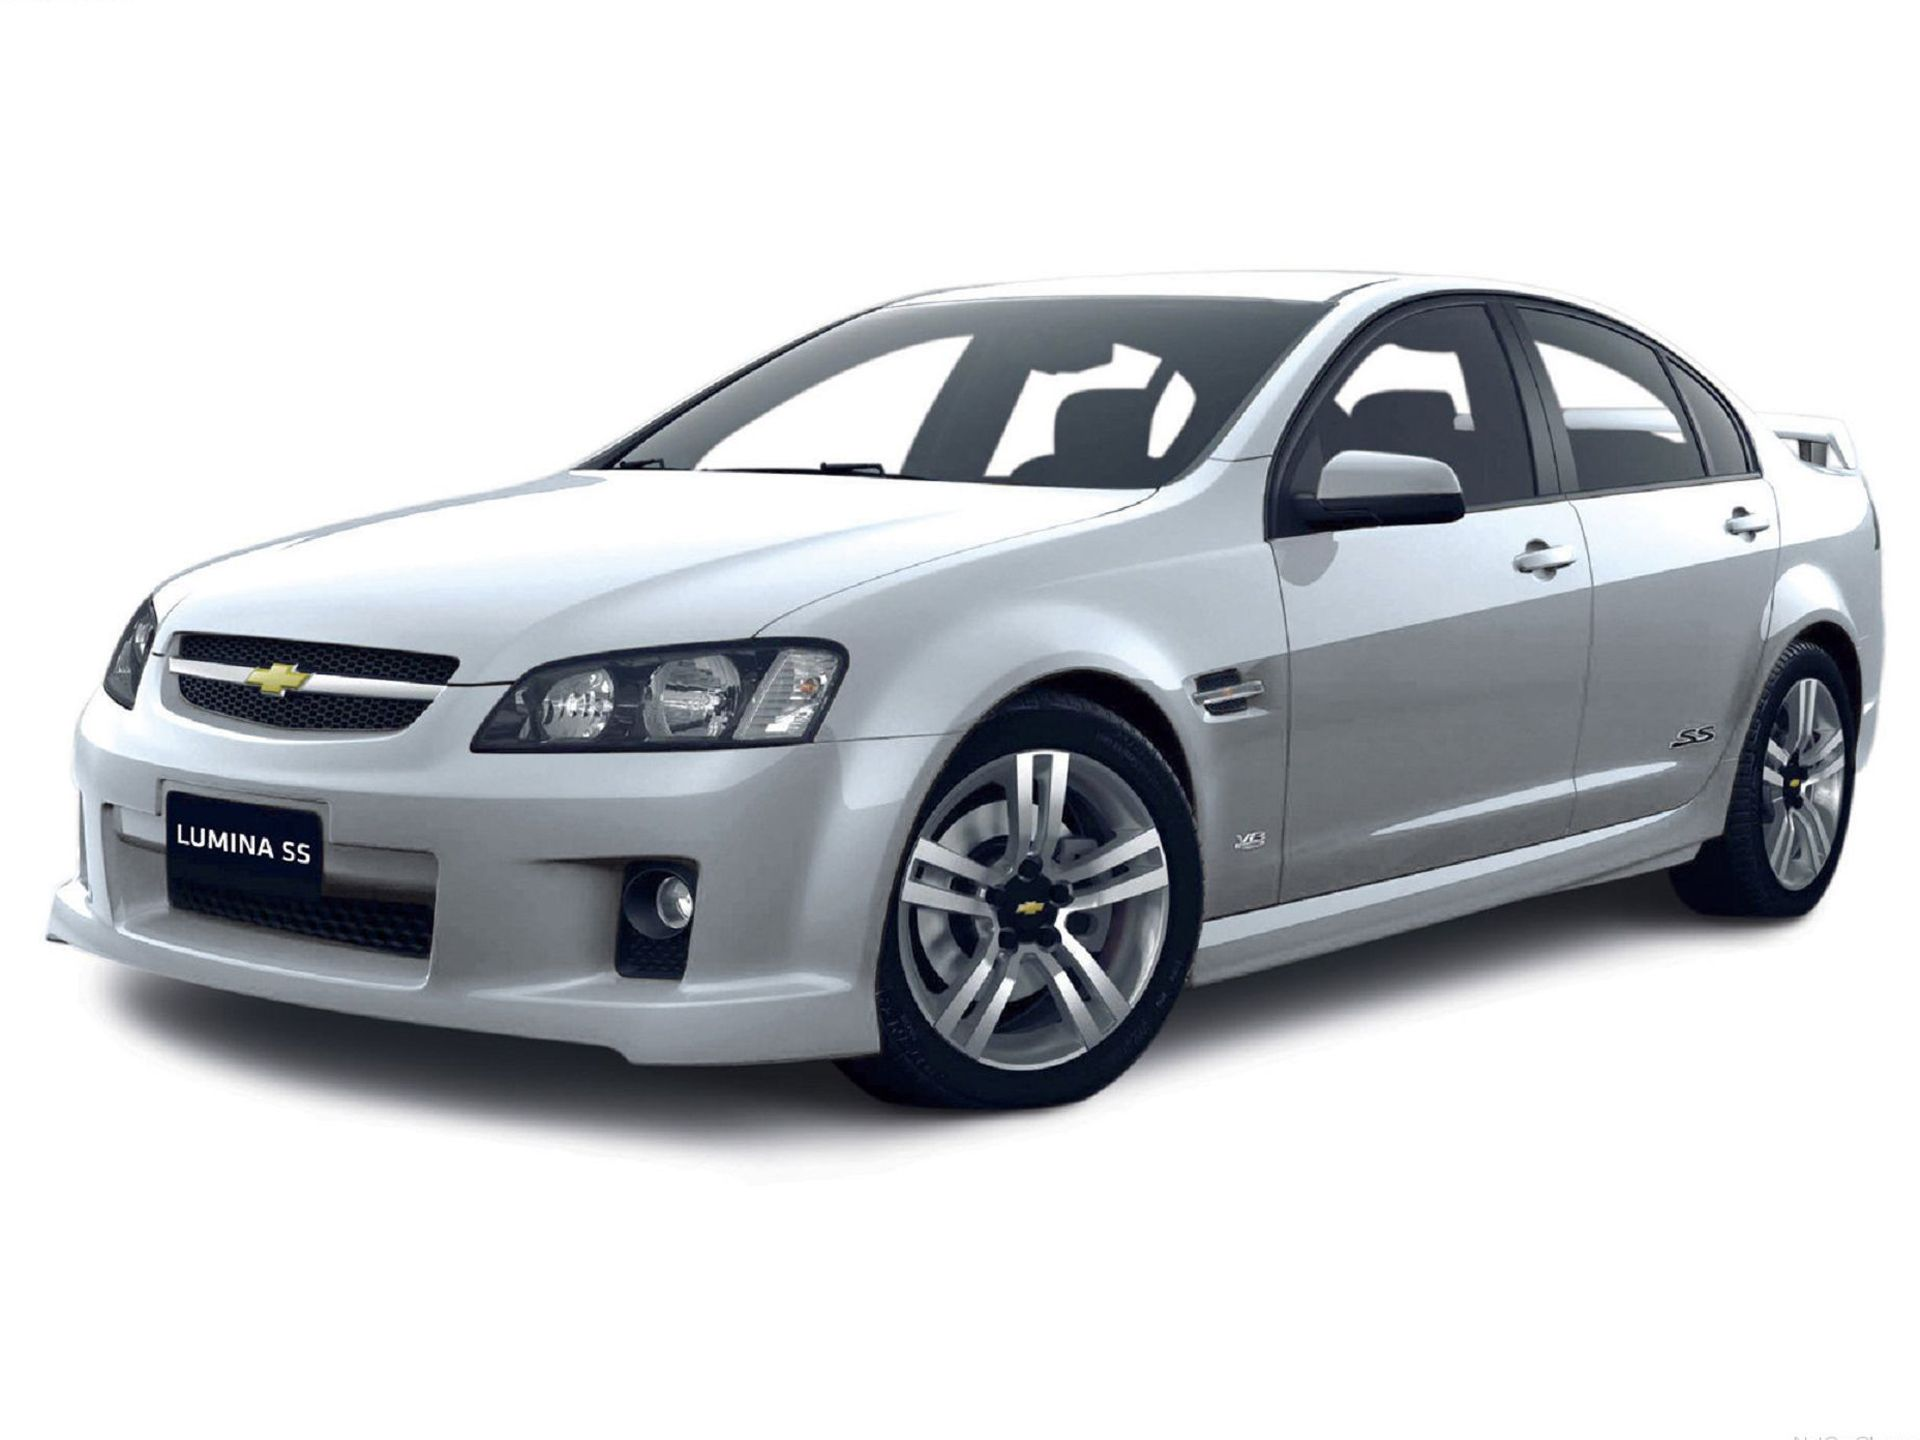 Chevrolet Lumina 2008 photo - 1